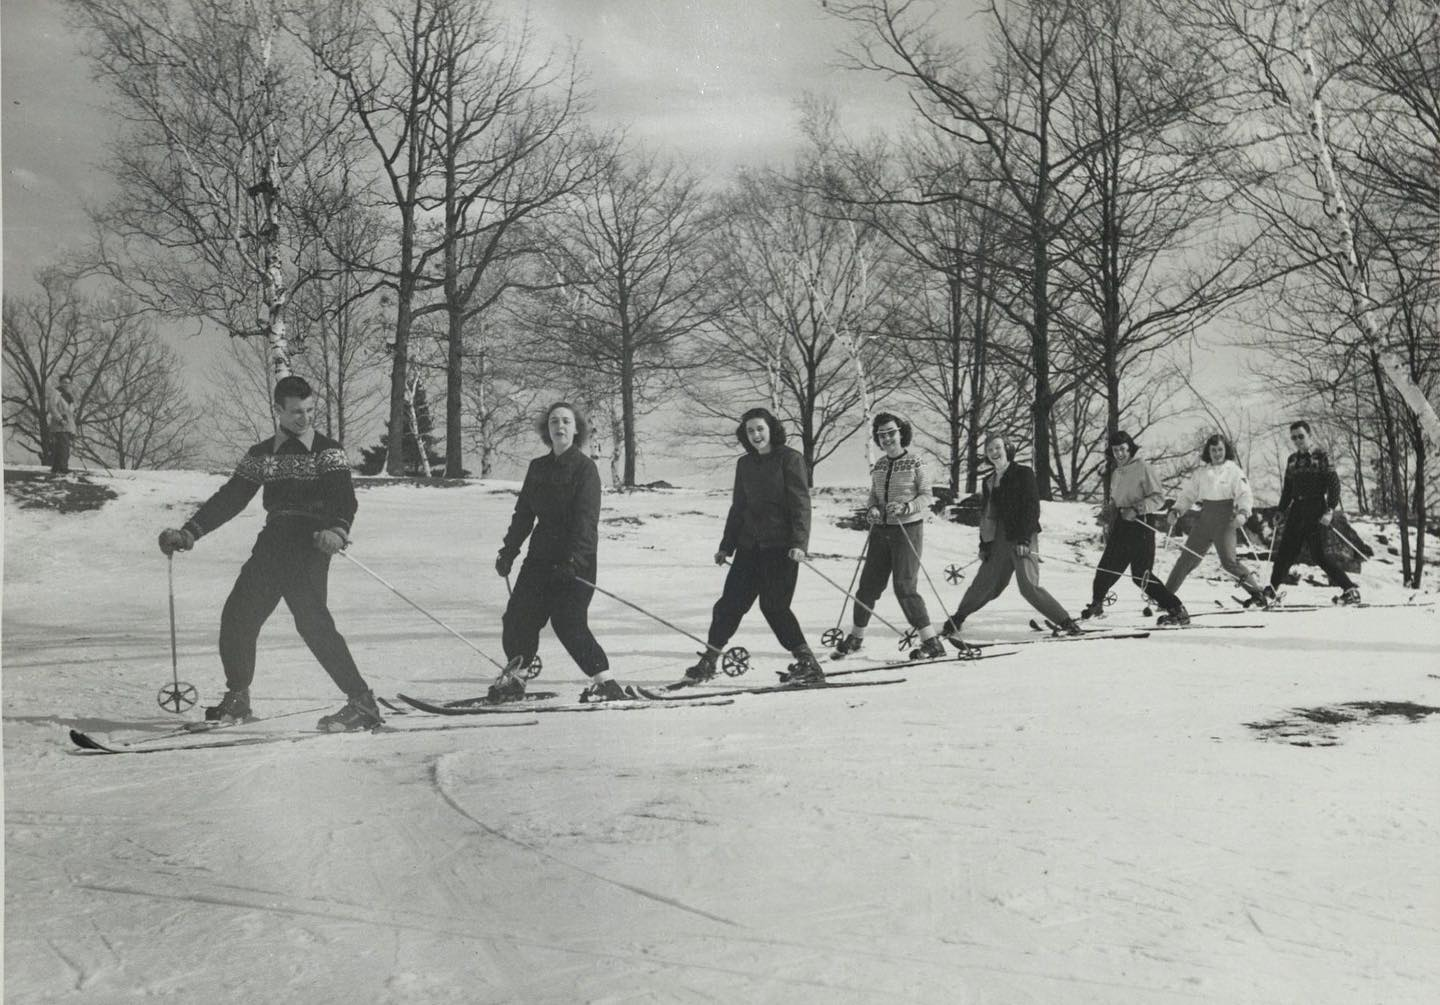 Getting ready to hit the slopes! UVM offered a very popular free recreational ski program in the late 1940s and early 1950s. Experienced instructors introduced students to basic fundamentals in daily lessons at the Burlington Country Club. Photo from the UVM Archives. #uvm #uvmlibraries #instauvm #librariesofinstagram